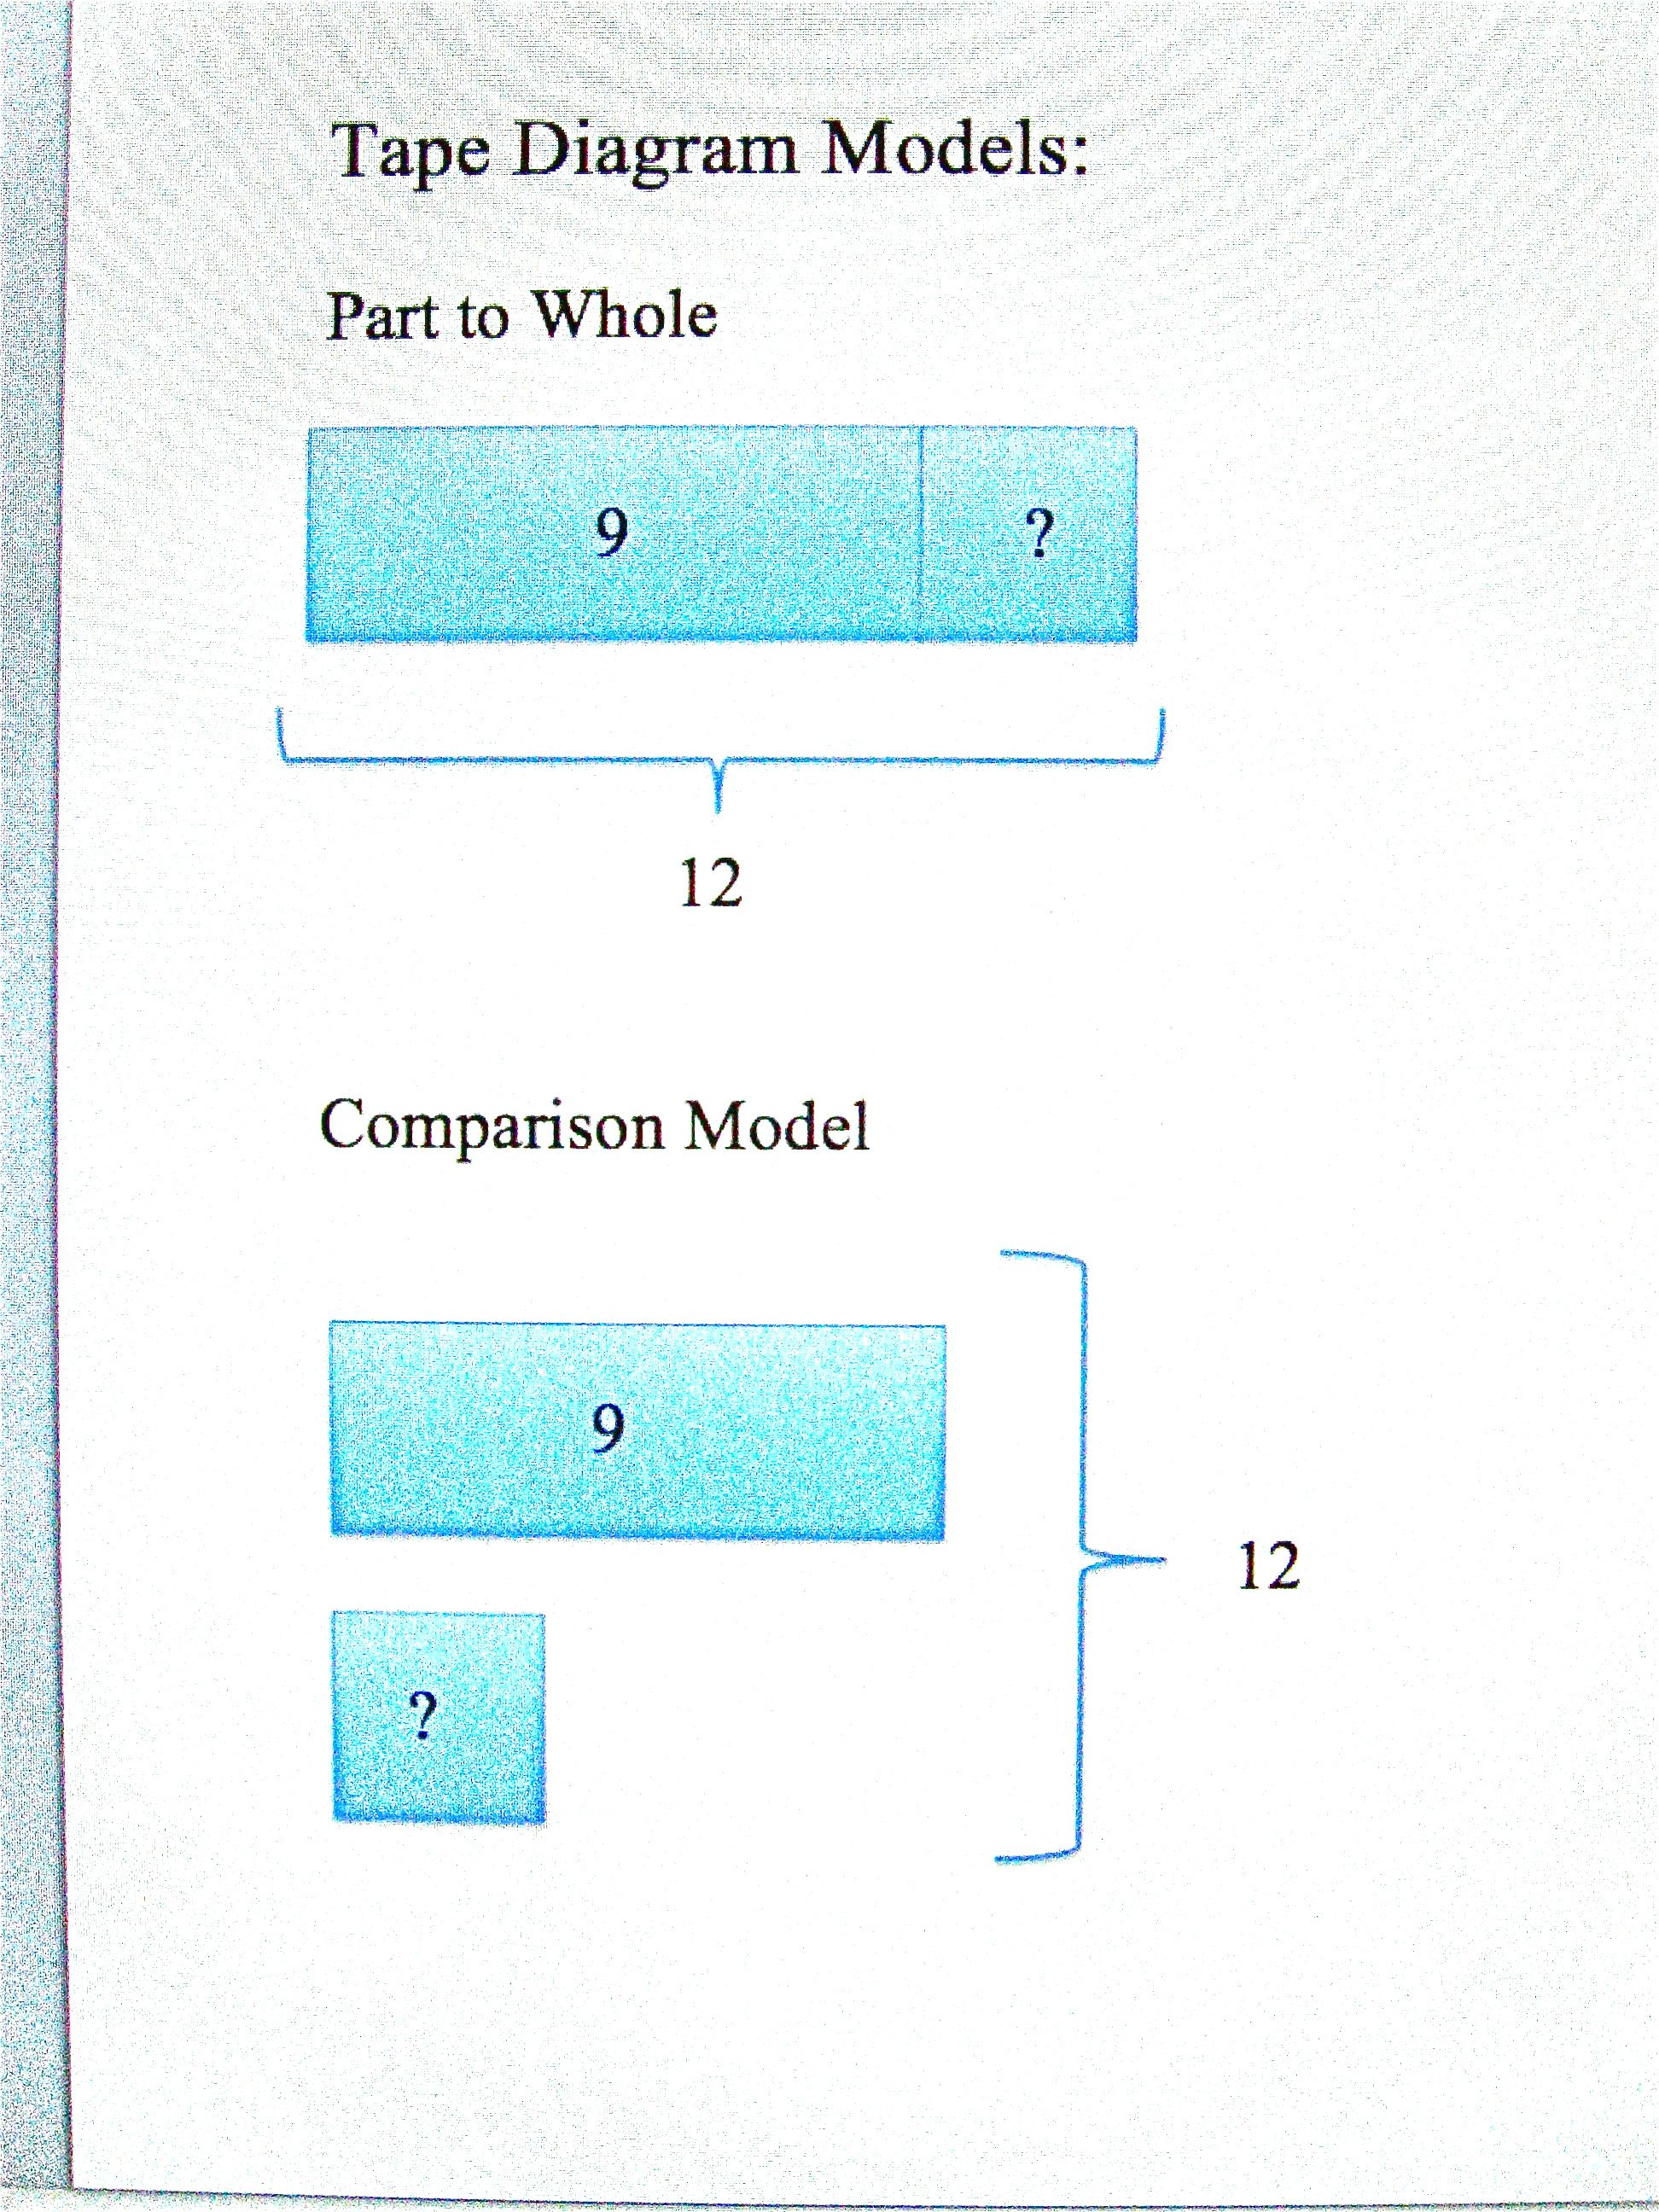 medium resolution of tape diagram models part to whole comparison models